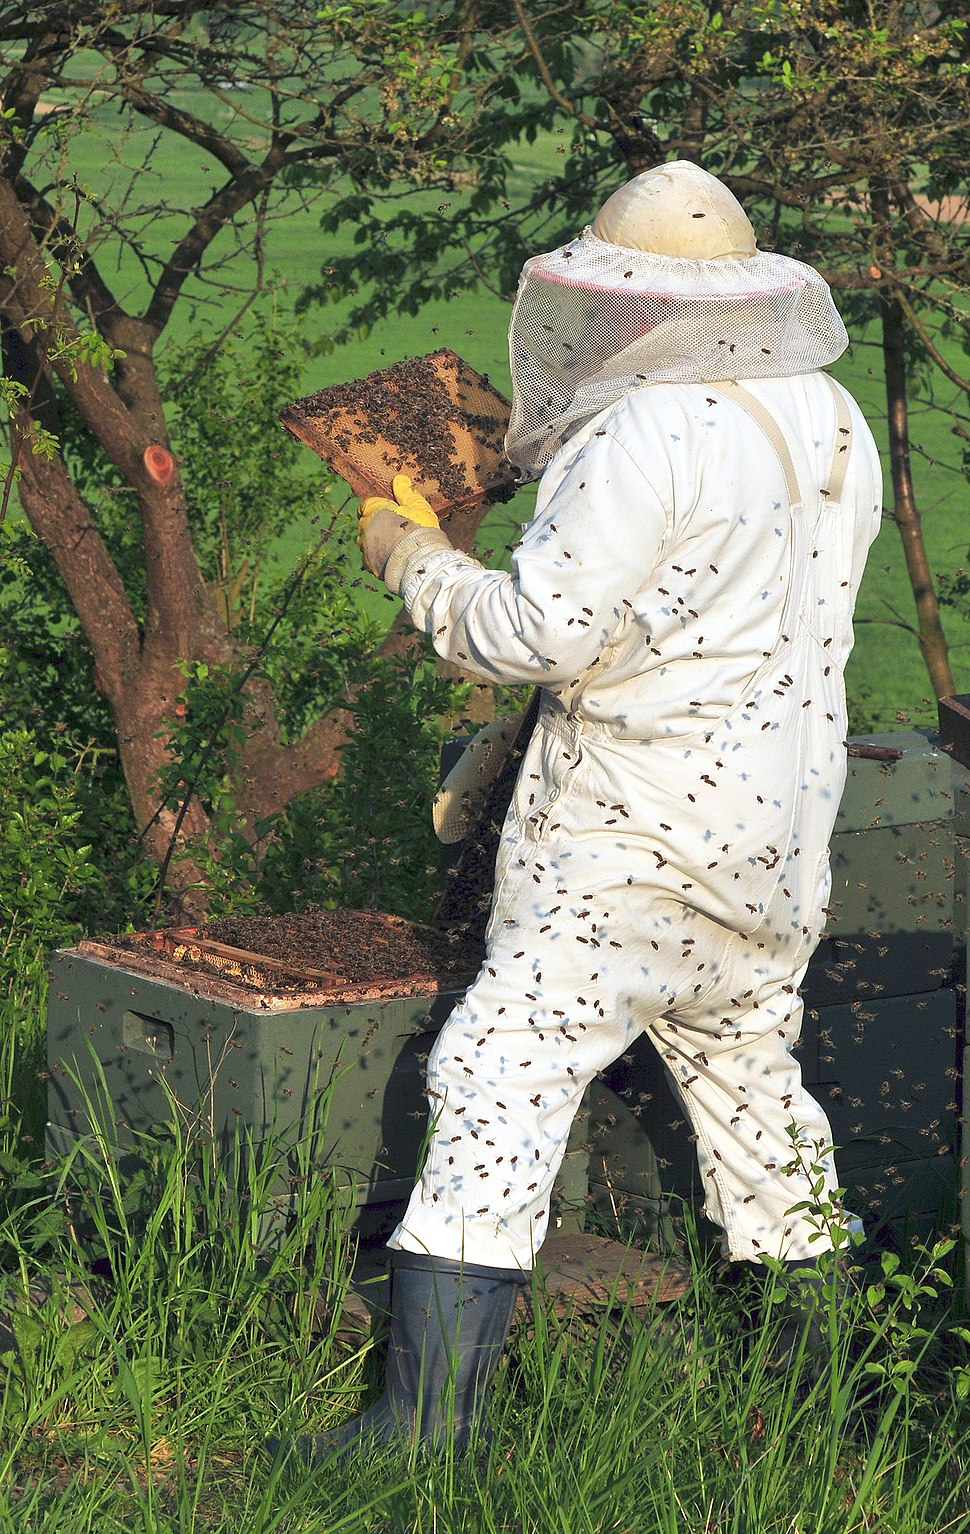 Beekeeper keeping bees